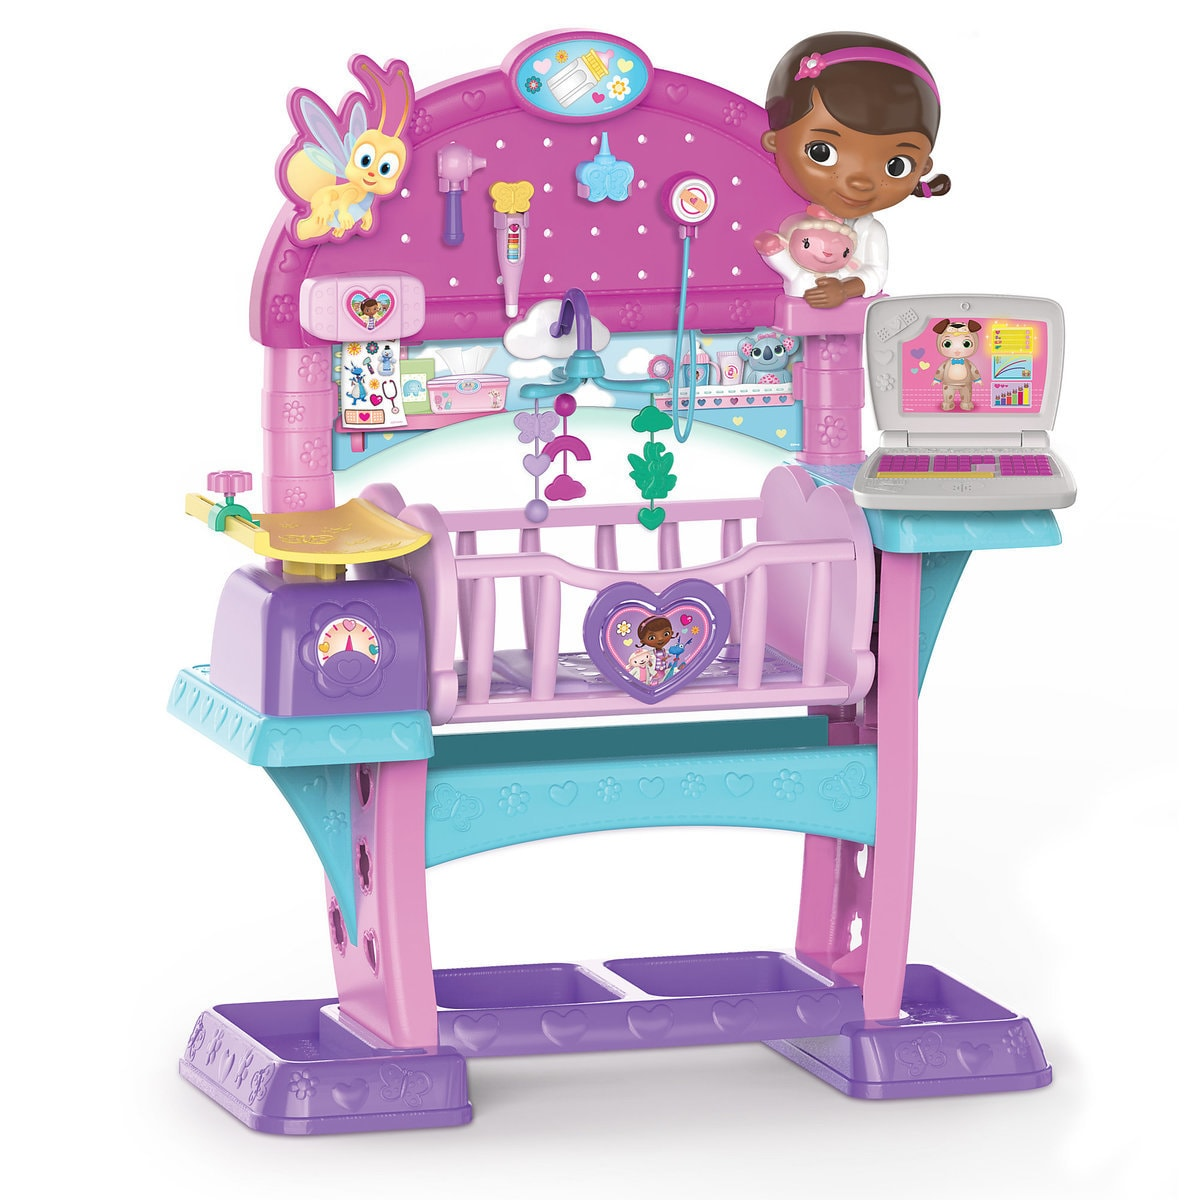 9af36dfdce9 Product Image of Doc McStuffins All-In-One-Nursery Playset   1